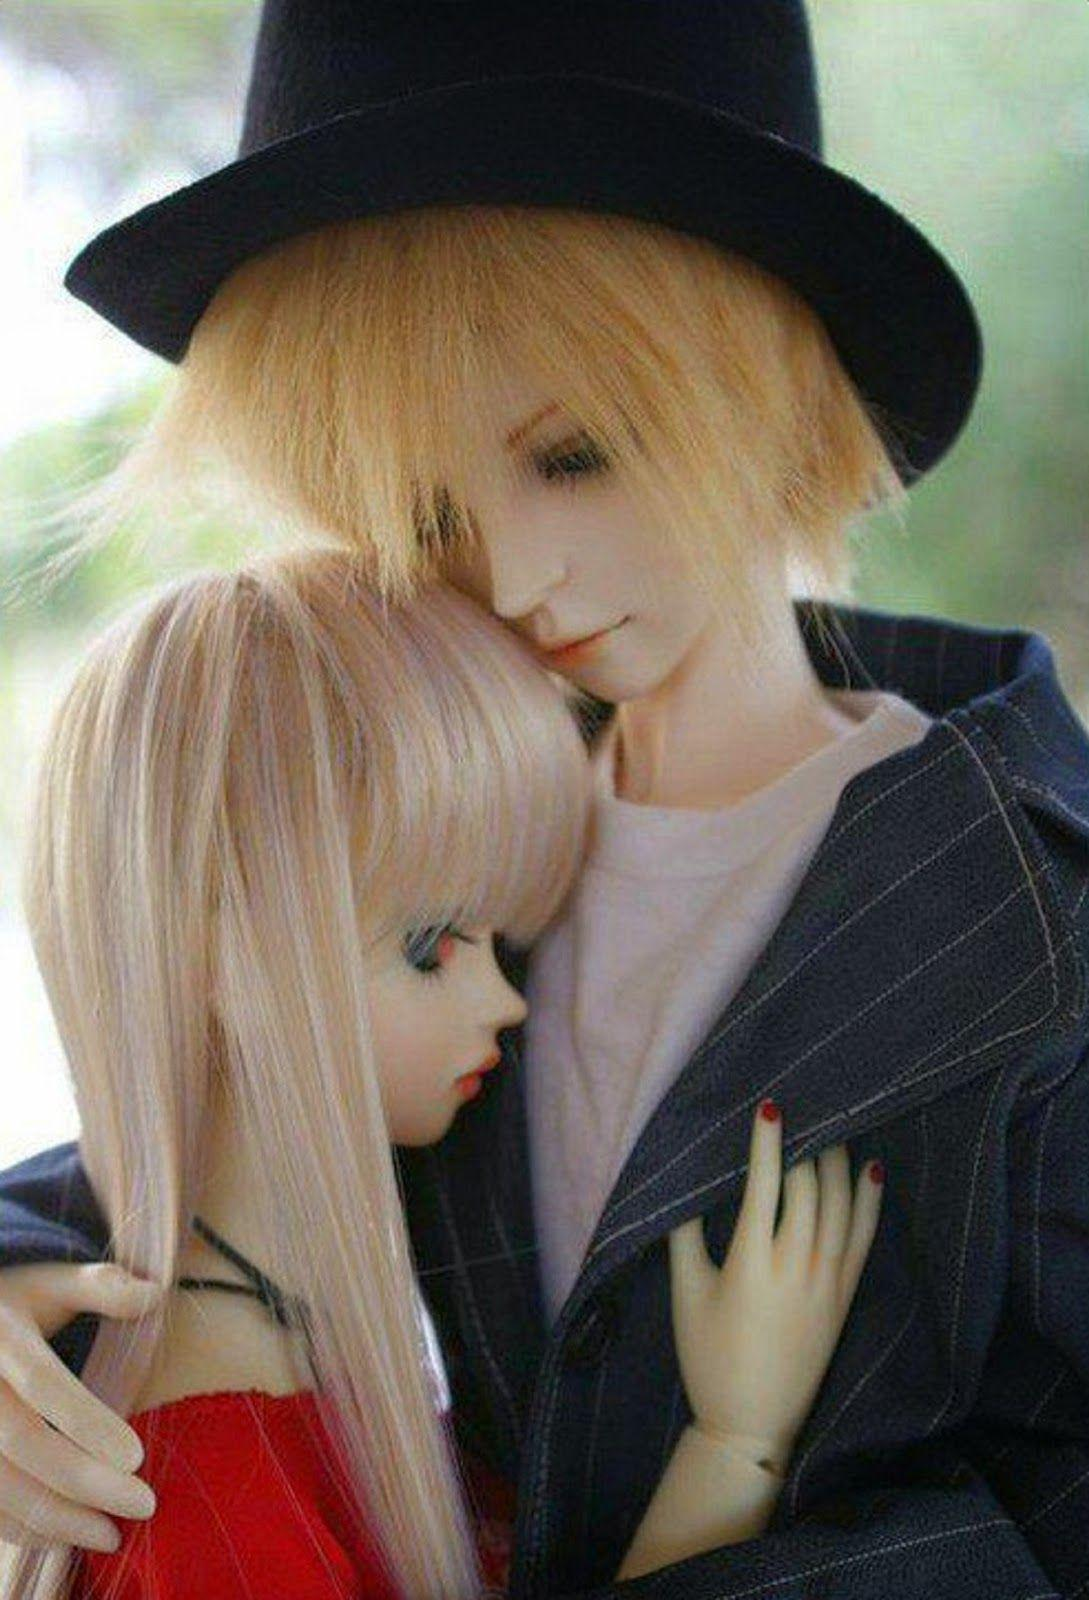 Cute Love Couple Wallpapers For Mobile Hd Wallpapers - Love Cute Couple Doll - HD Wallpaper